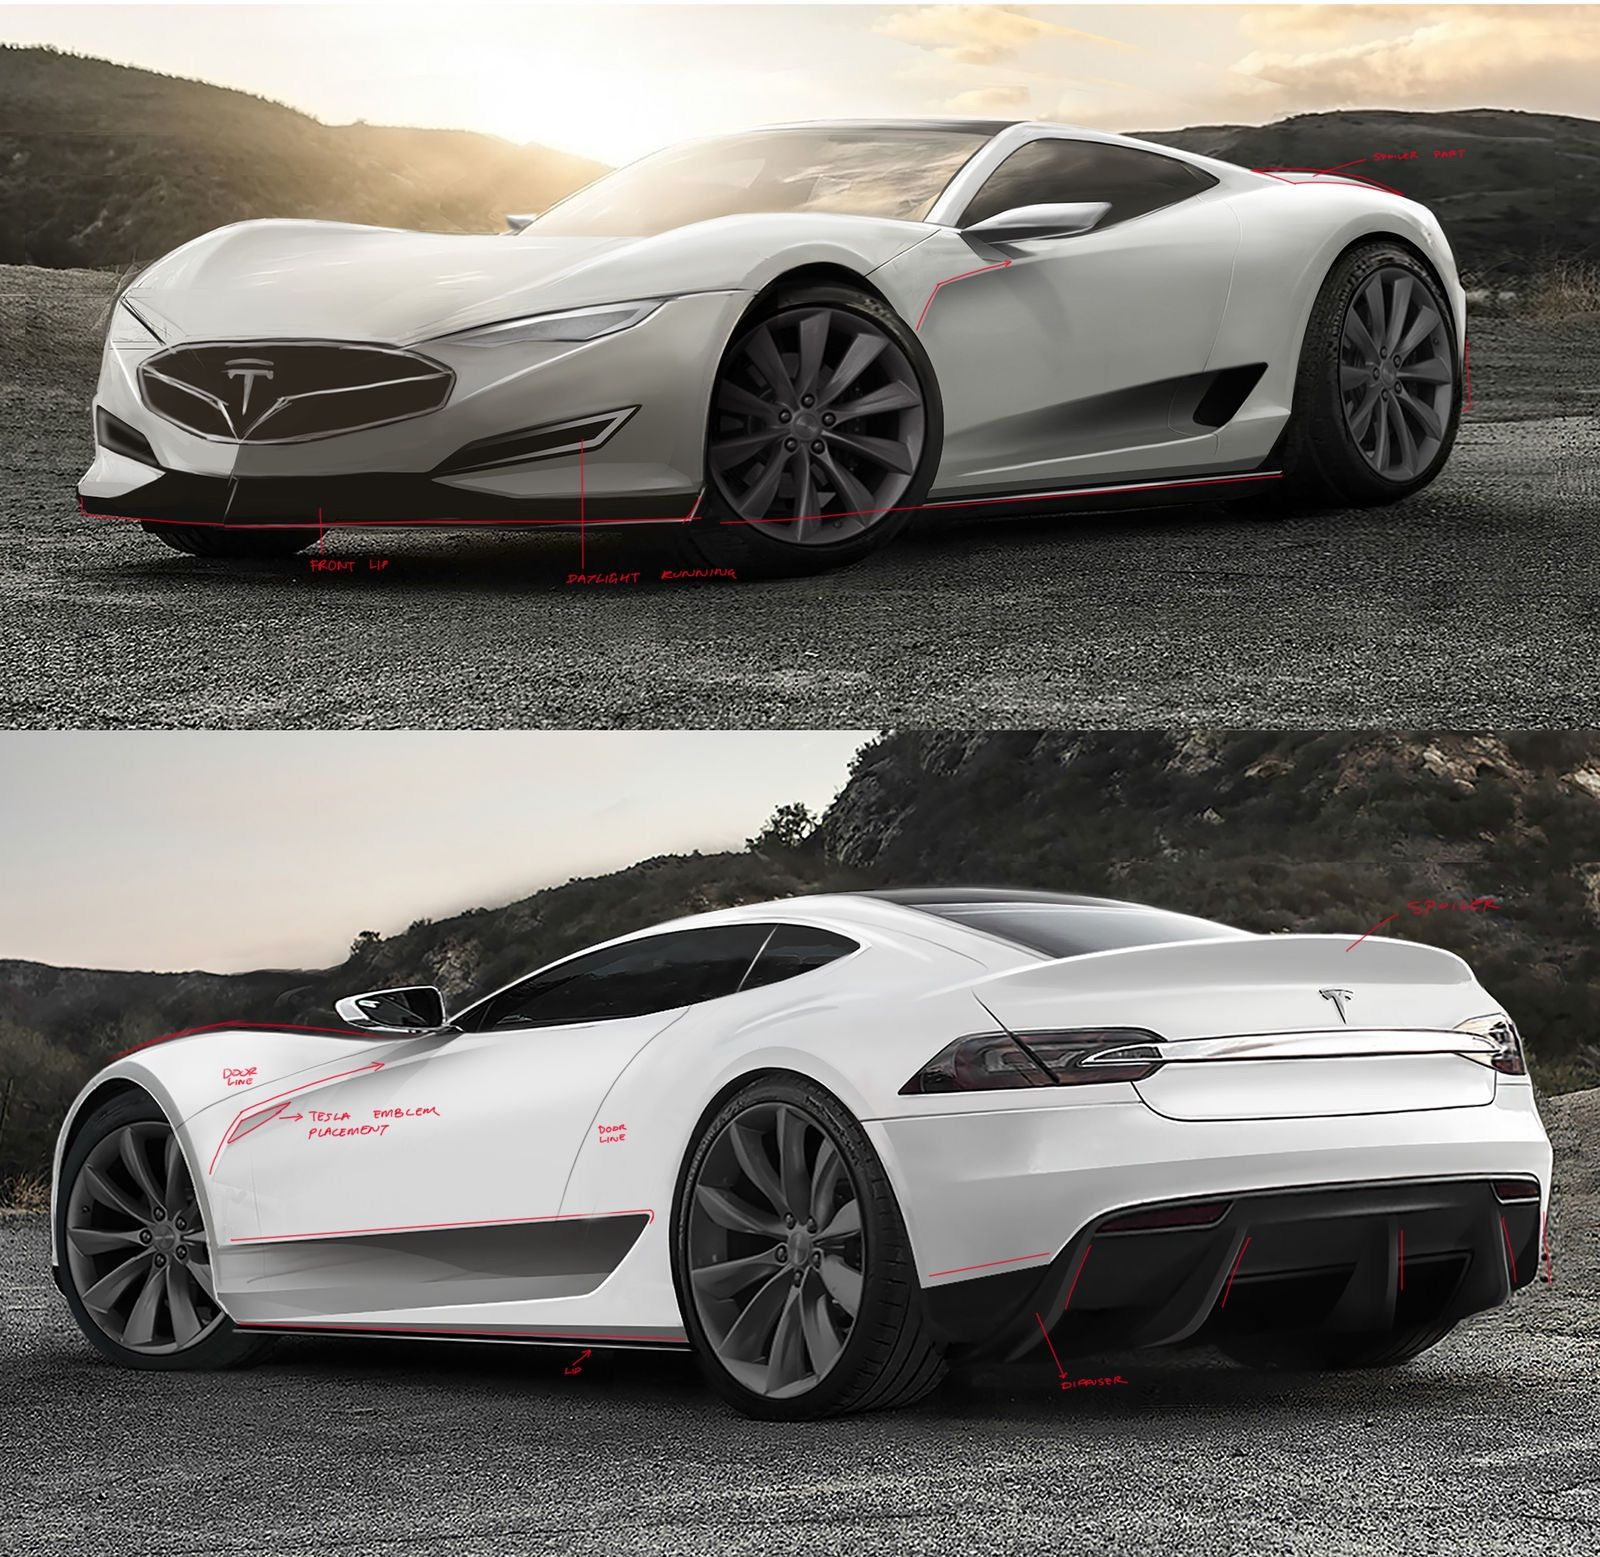 There are many rumors about this Tesla Model R being the